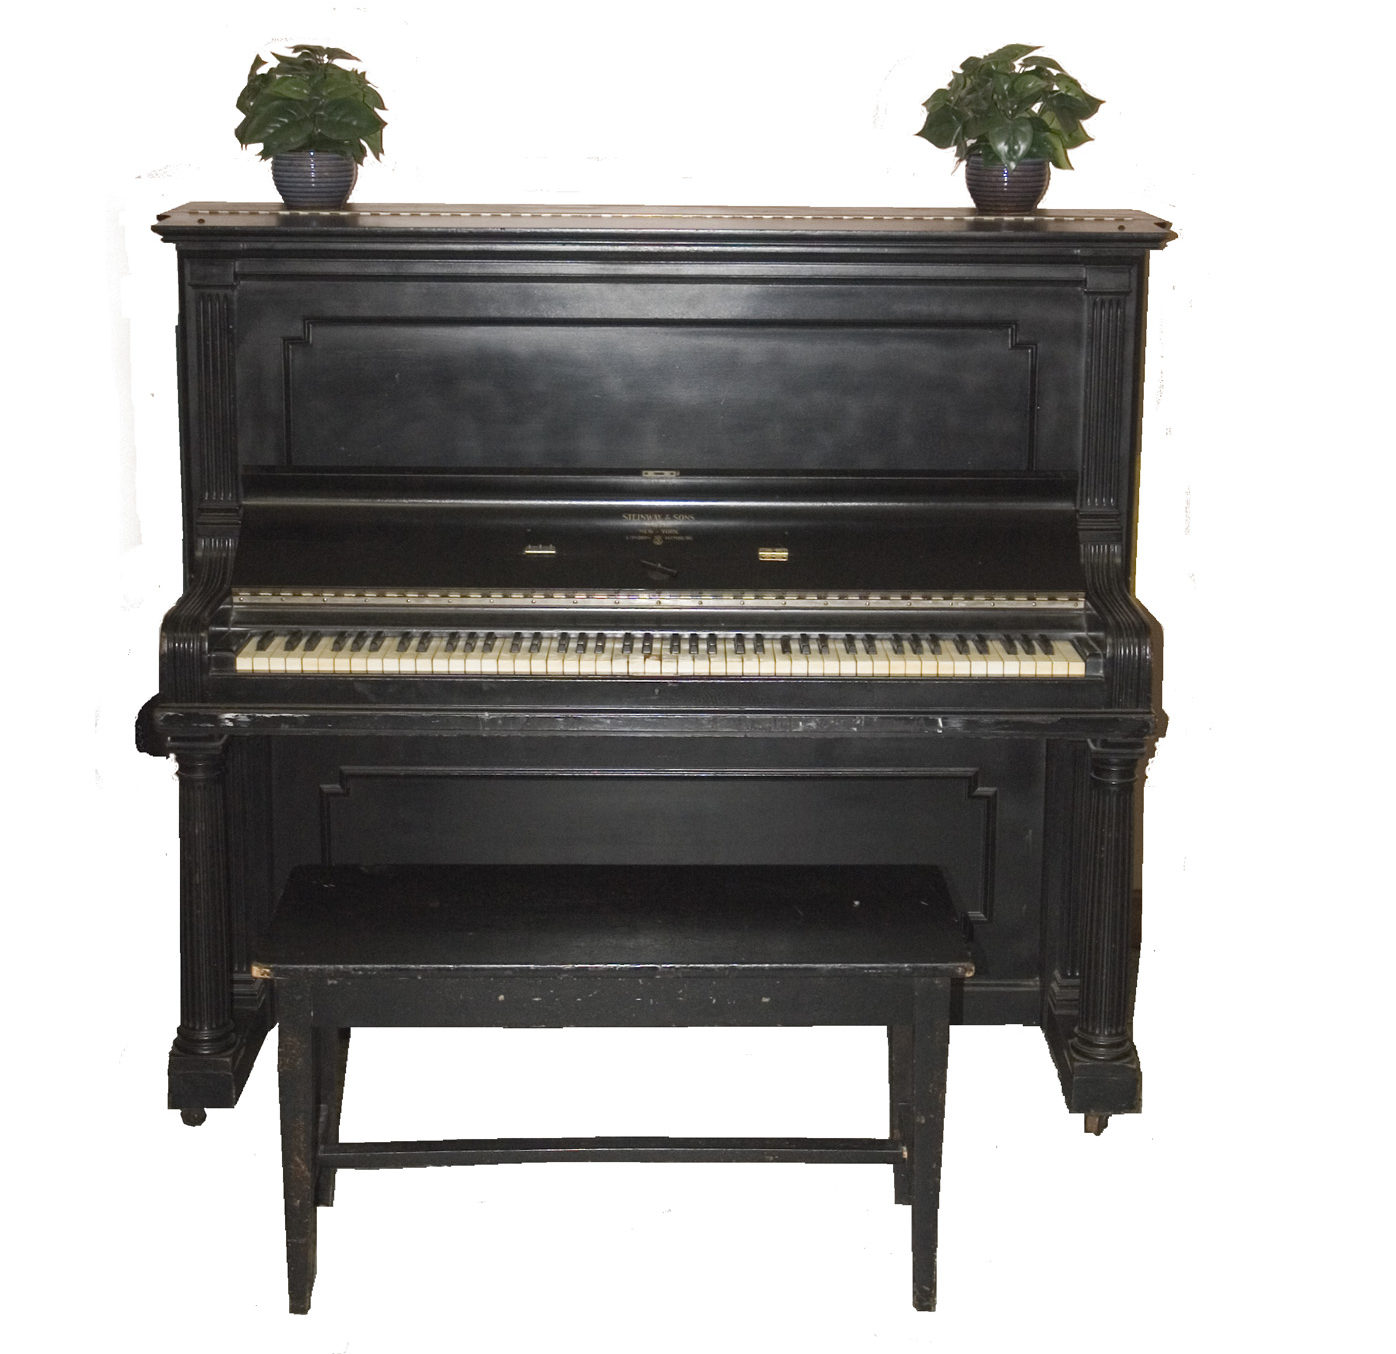 NYC hymn writer Fanny Crosby's piano left over from the 19th Century evangelical resurgence. @Bowery Mission